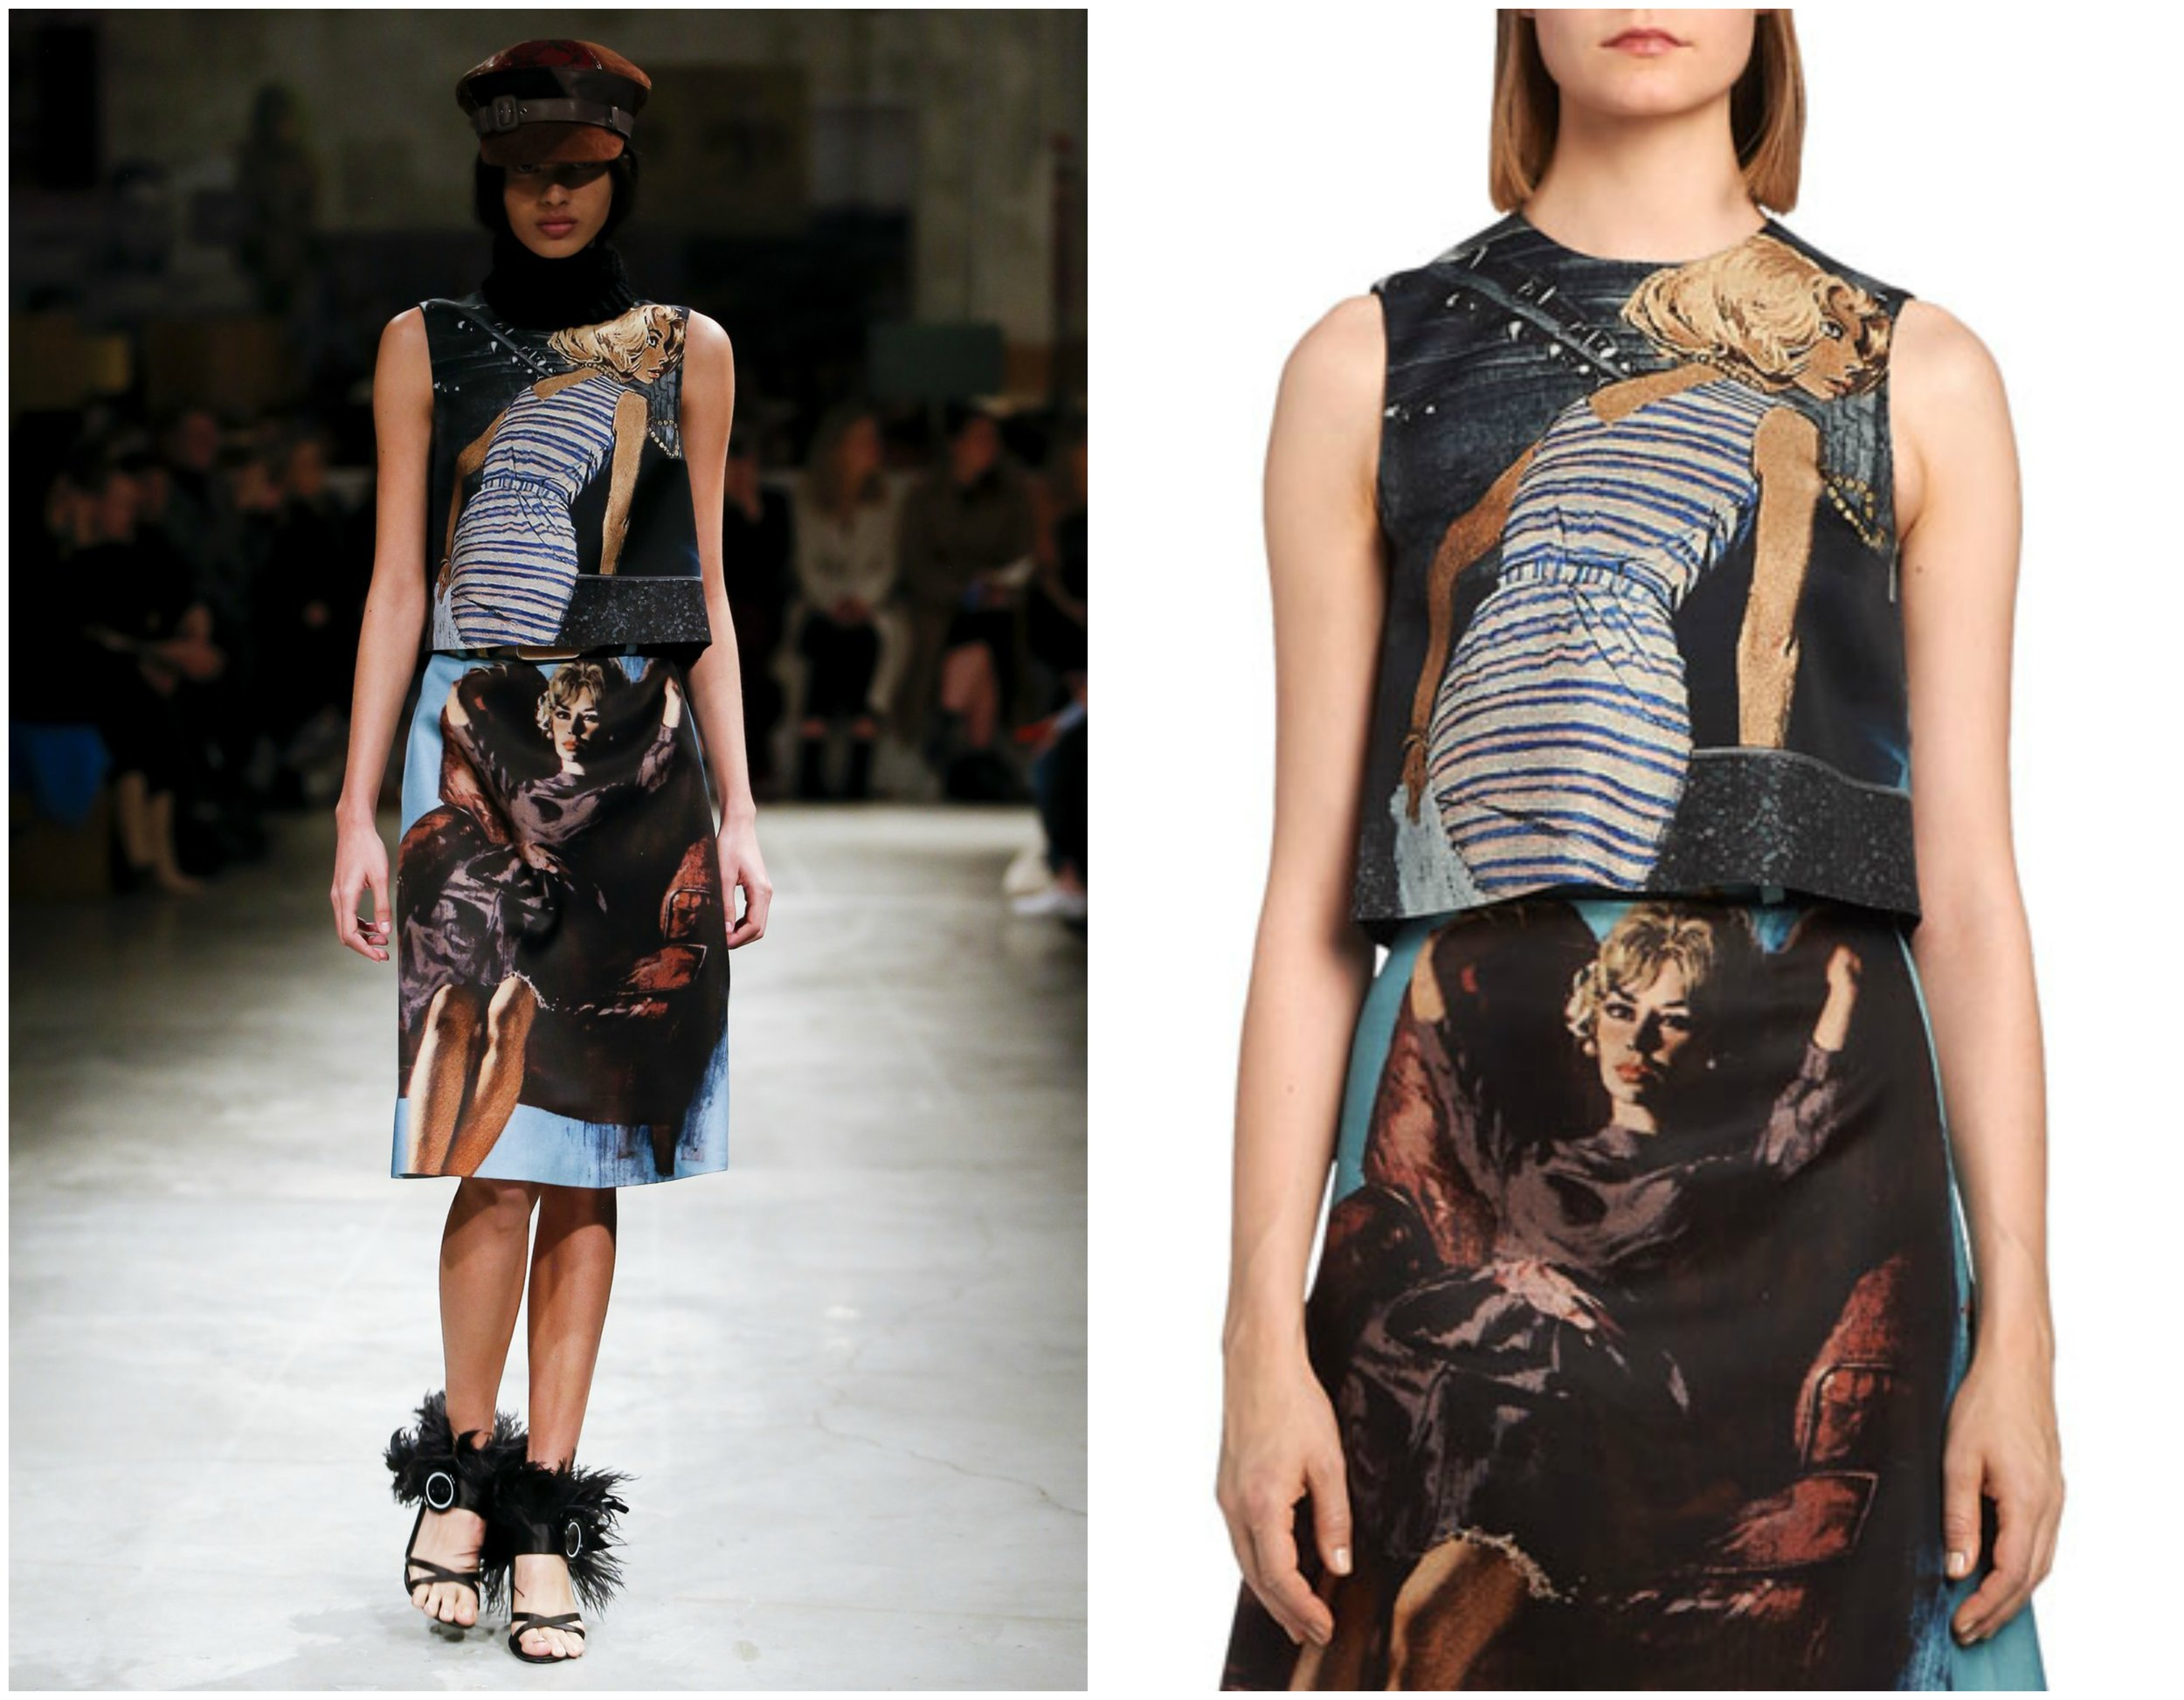 Prada never disappoints, however,when researching e-commerce sites, we were unable to find any of the printed skirts from the runway show.Nonetheless, the  printed top  can be found at Bergdorf's.